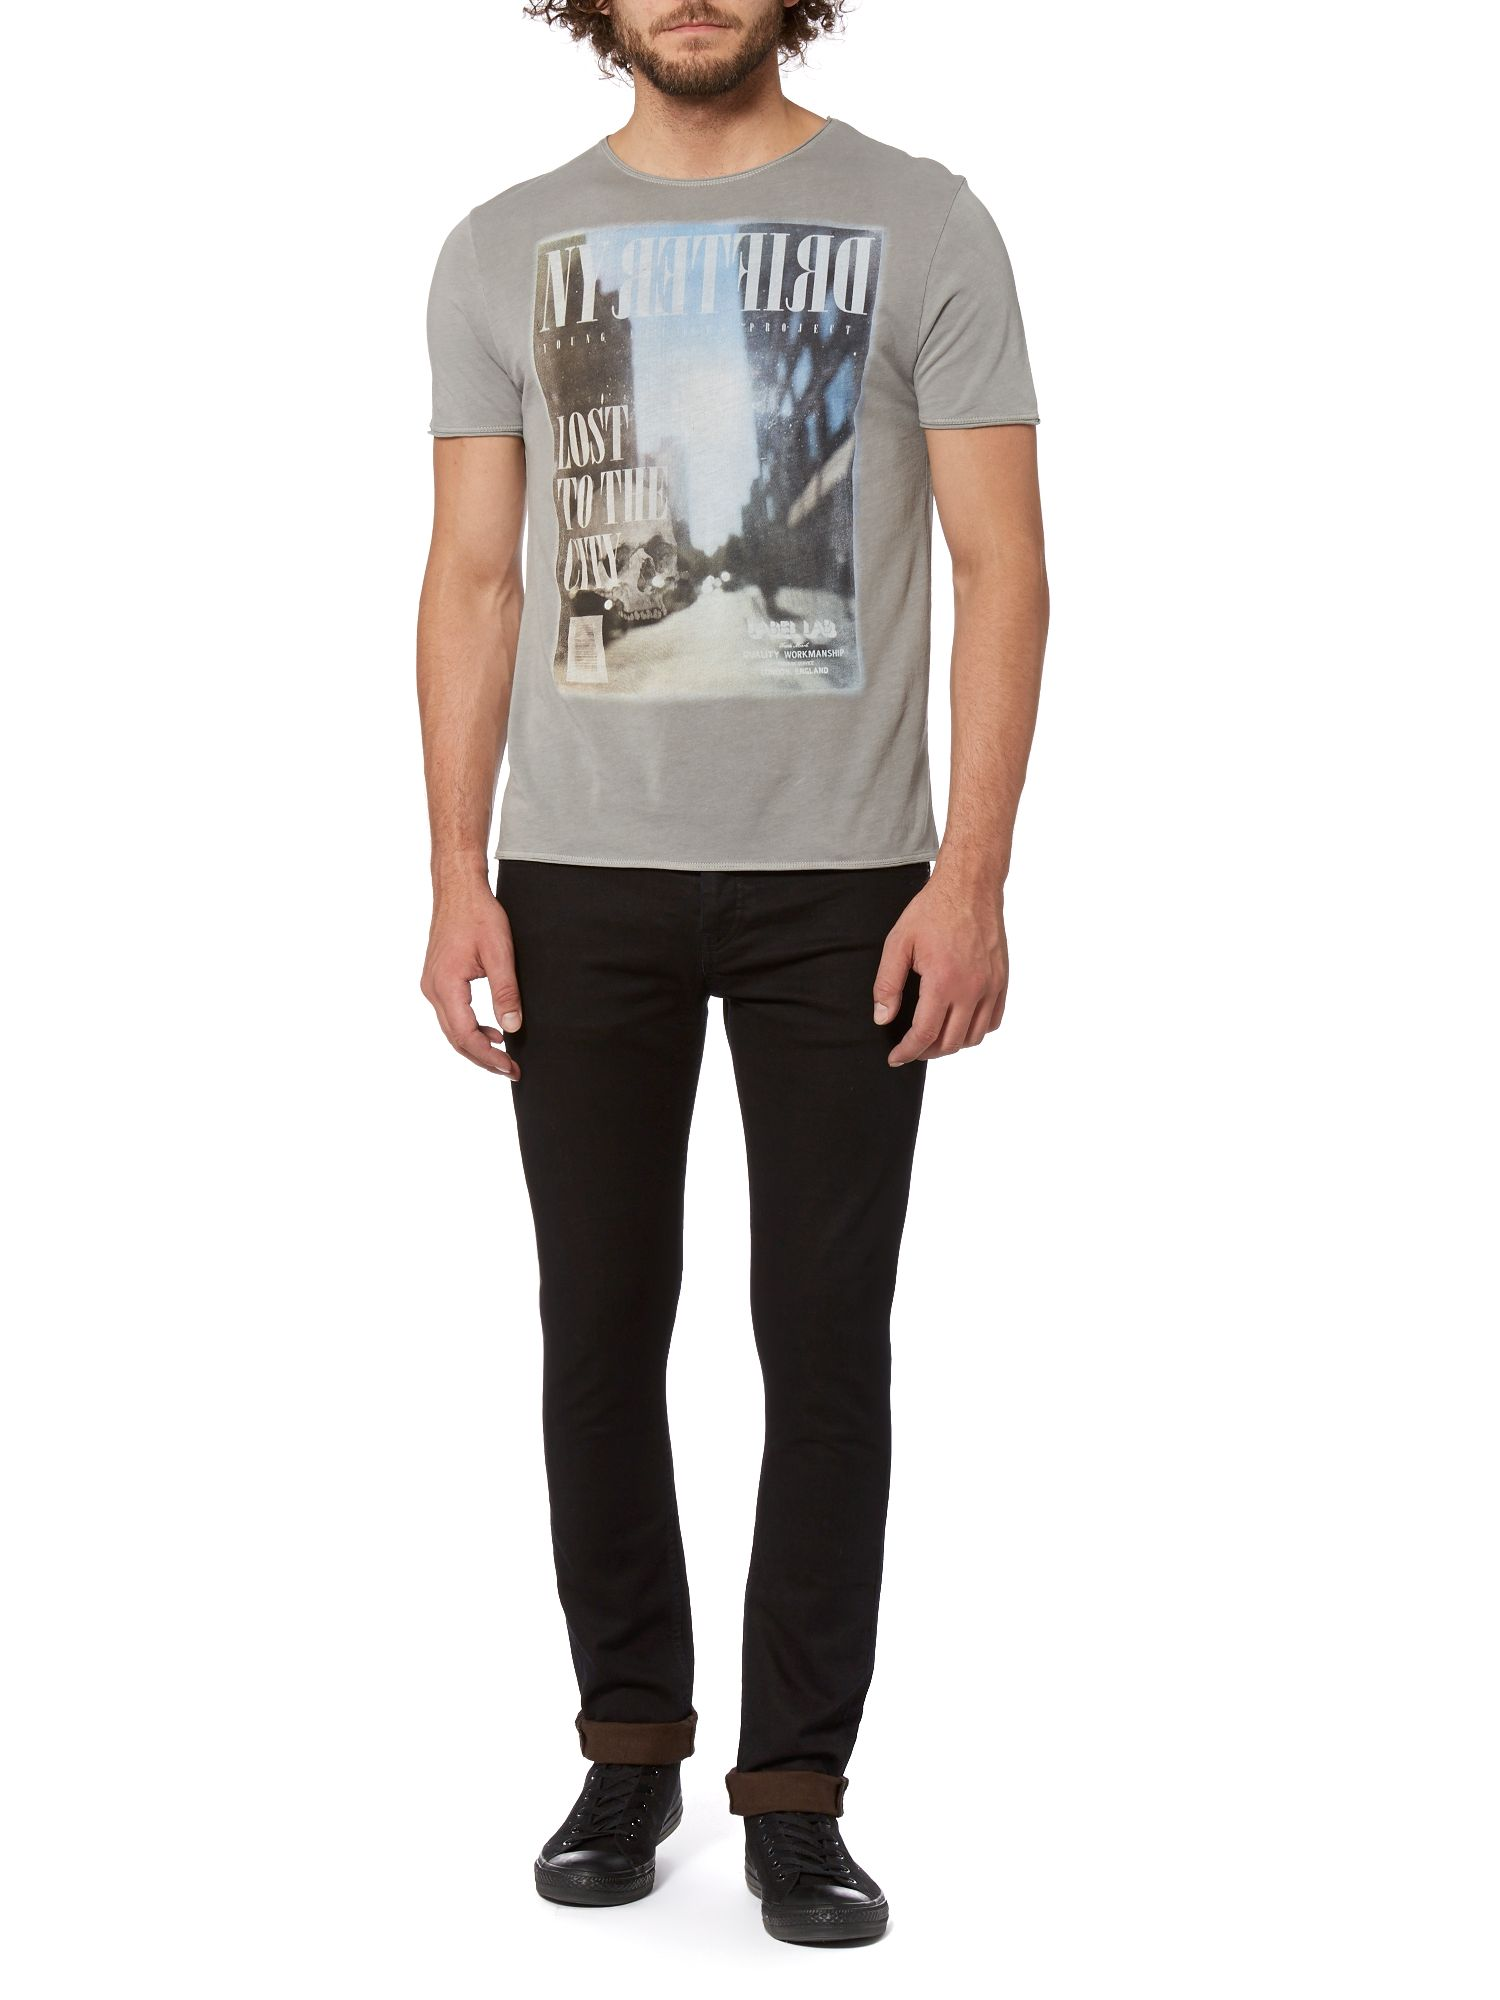 Drifter graphic t-shirt